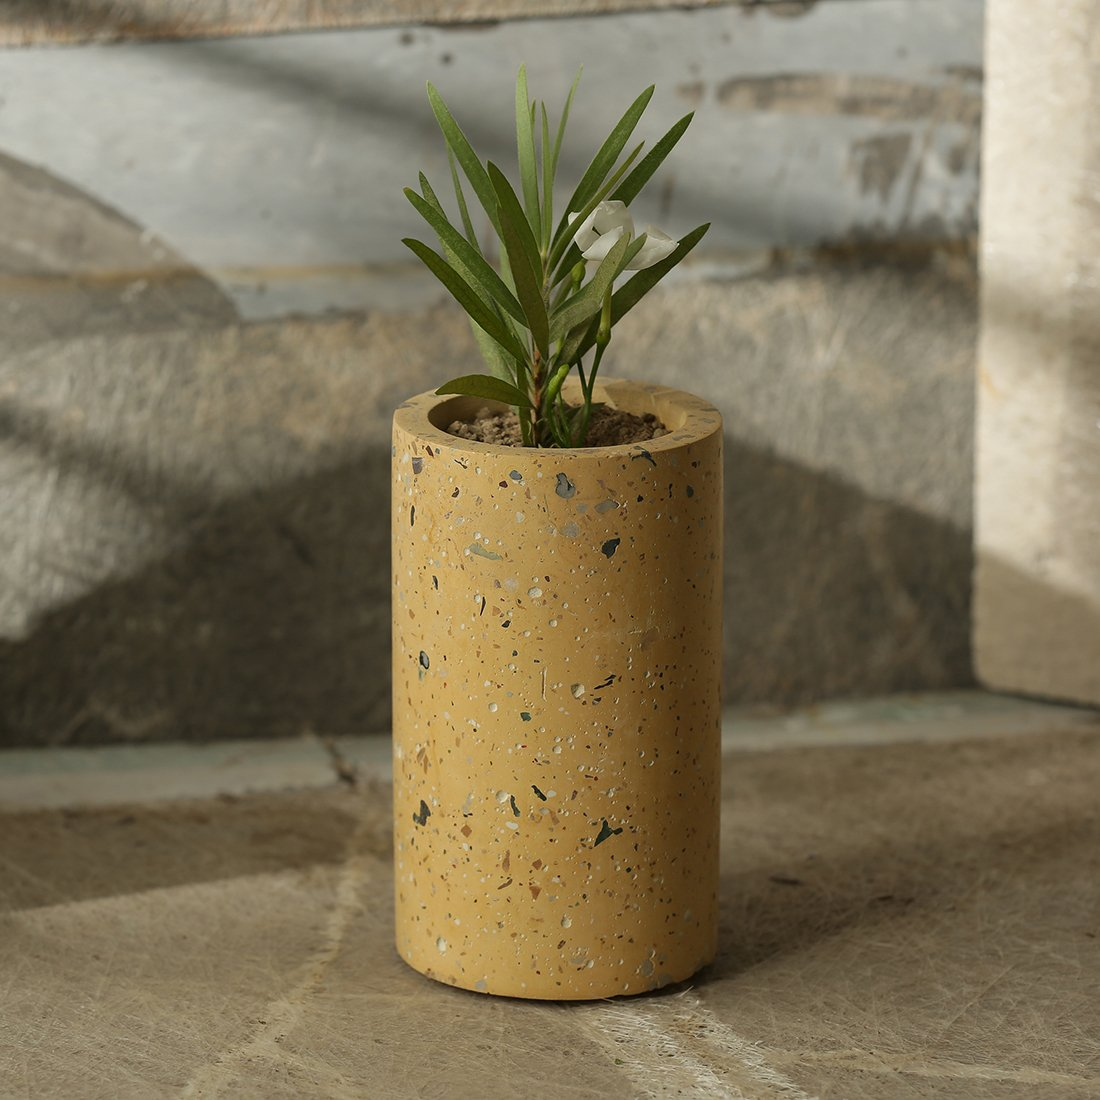 Moorni The Tall Chokor Handcrafted Terrazzo Planter In Concrete